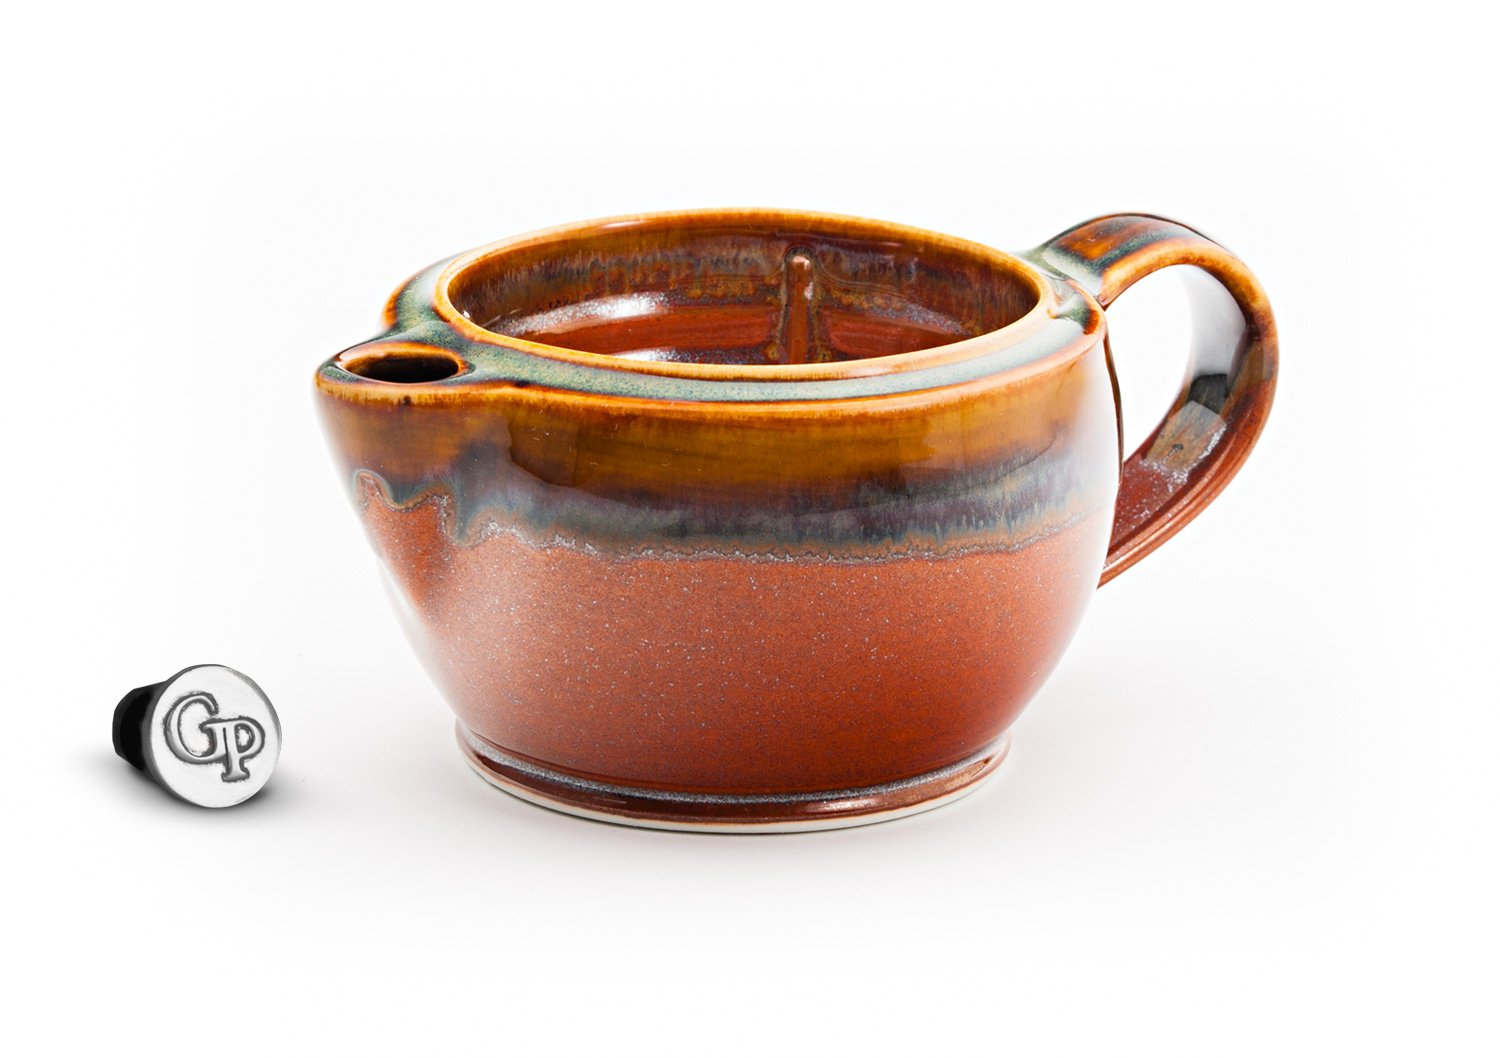 Georgetown Pottery G12 Shaving Scuttle Mug - Hamada & Persimmon